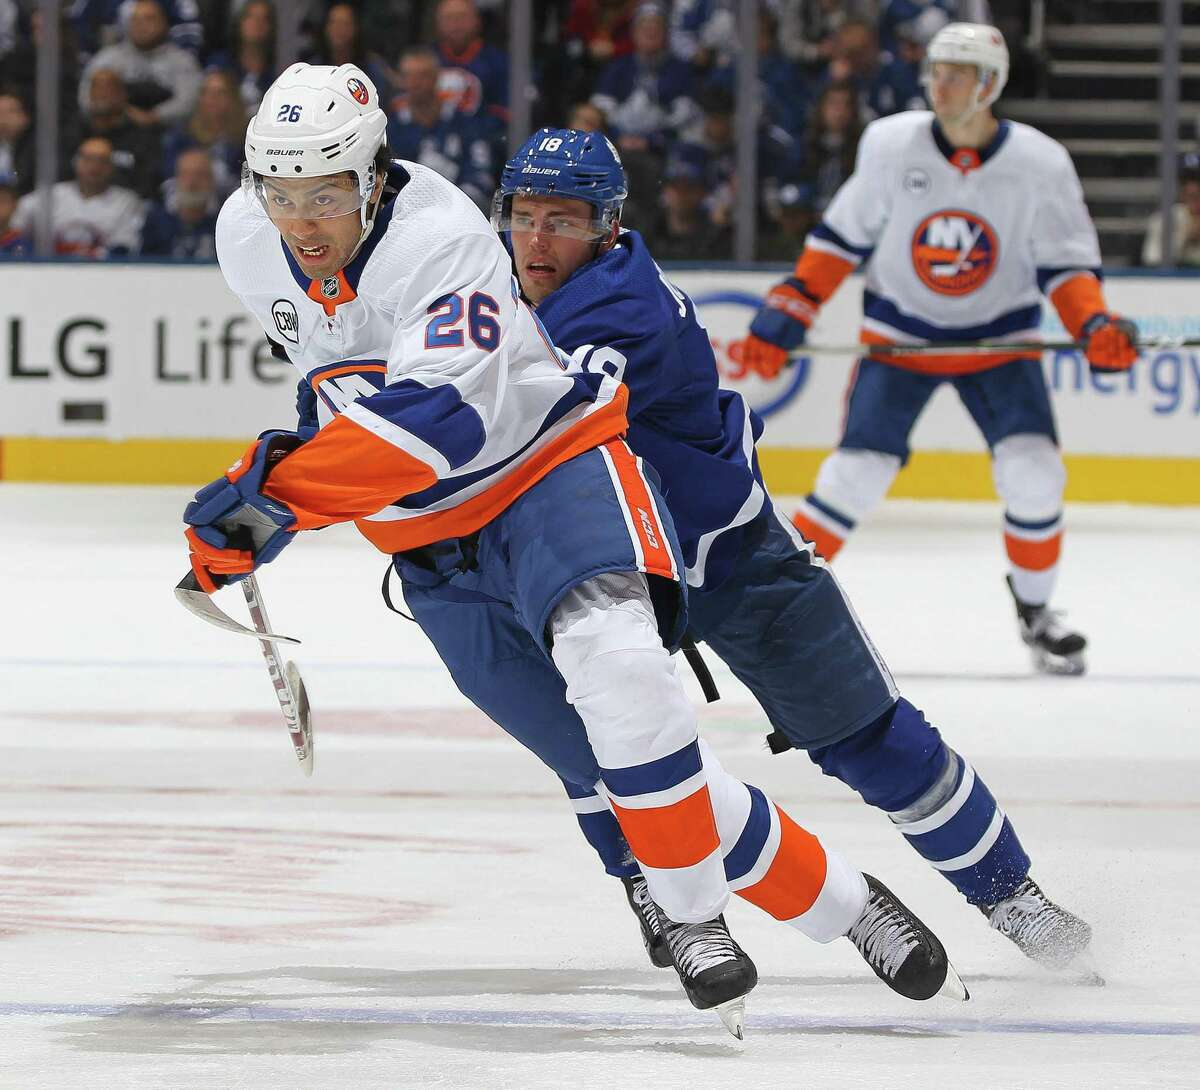 The Islanders Josh Ho-Sangskates away from a checking Andreas Johnsson of the Maple Leafs on Dec. 29 in Toronto.